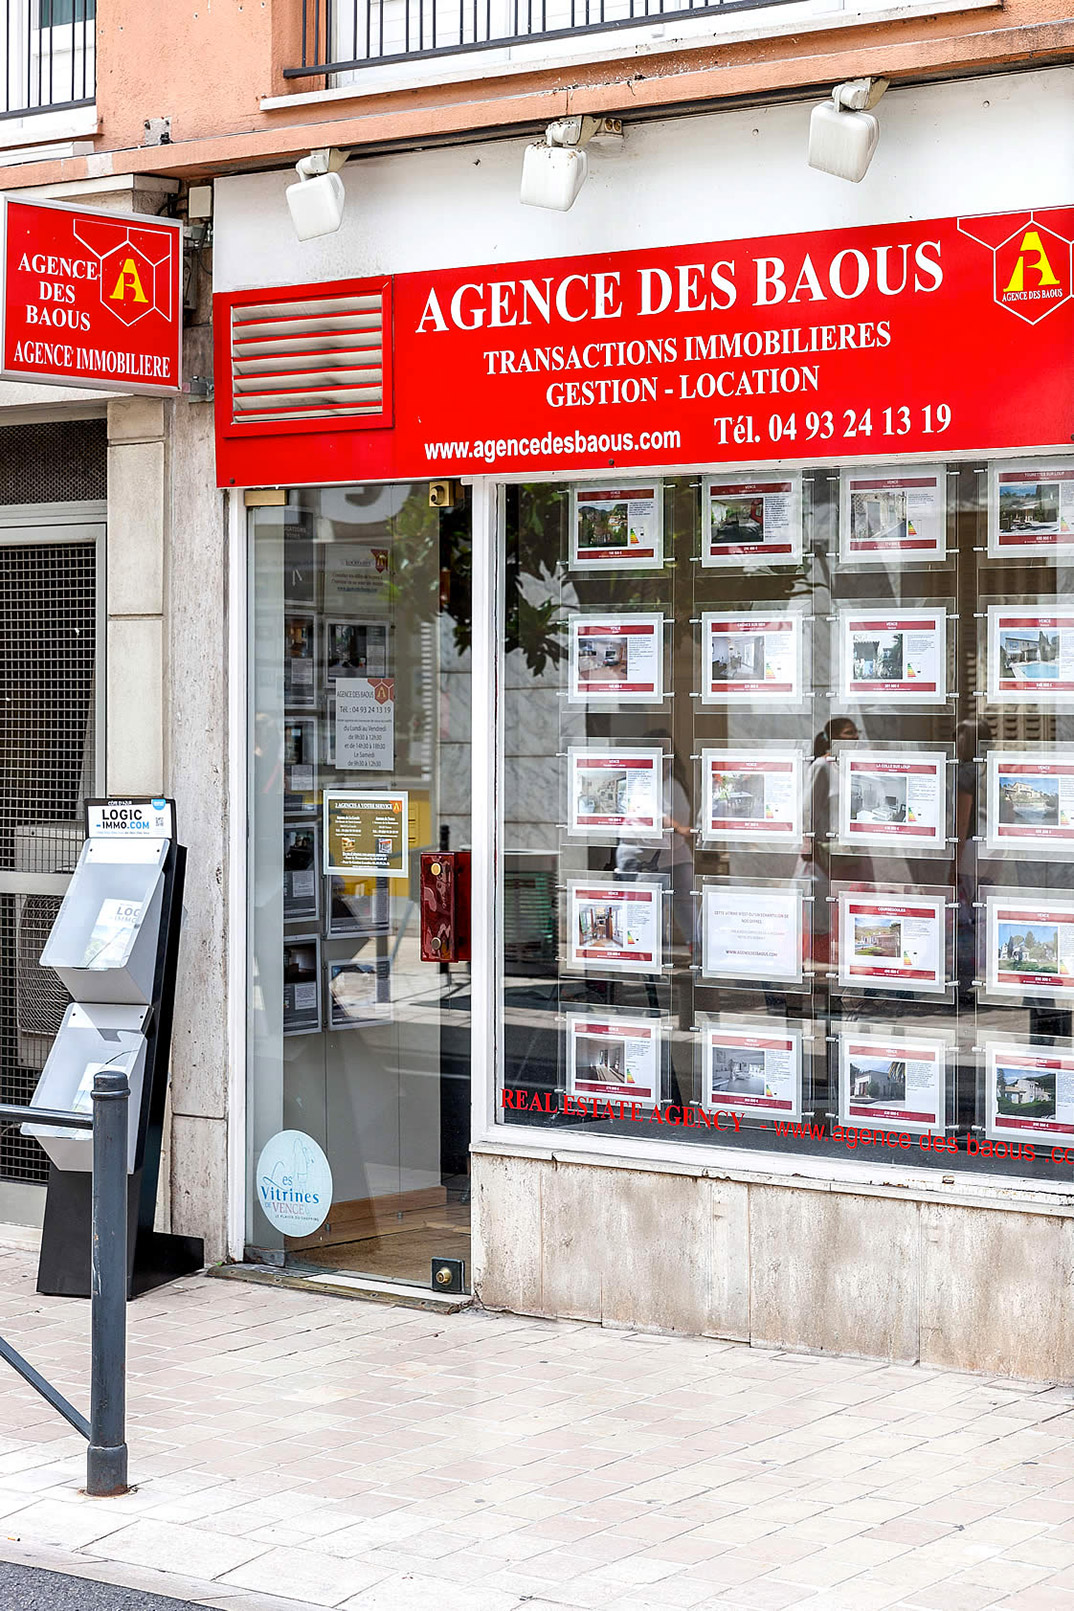 Photo of the real estate agency Agence des Baous